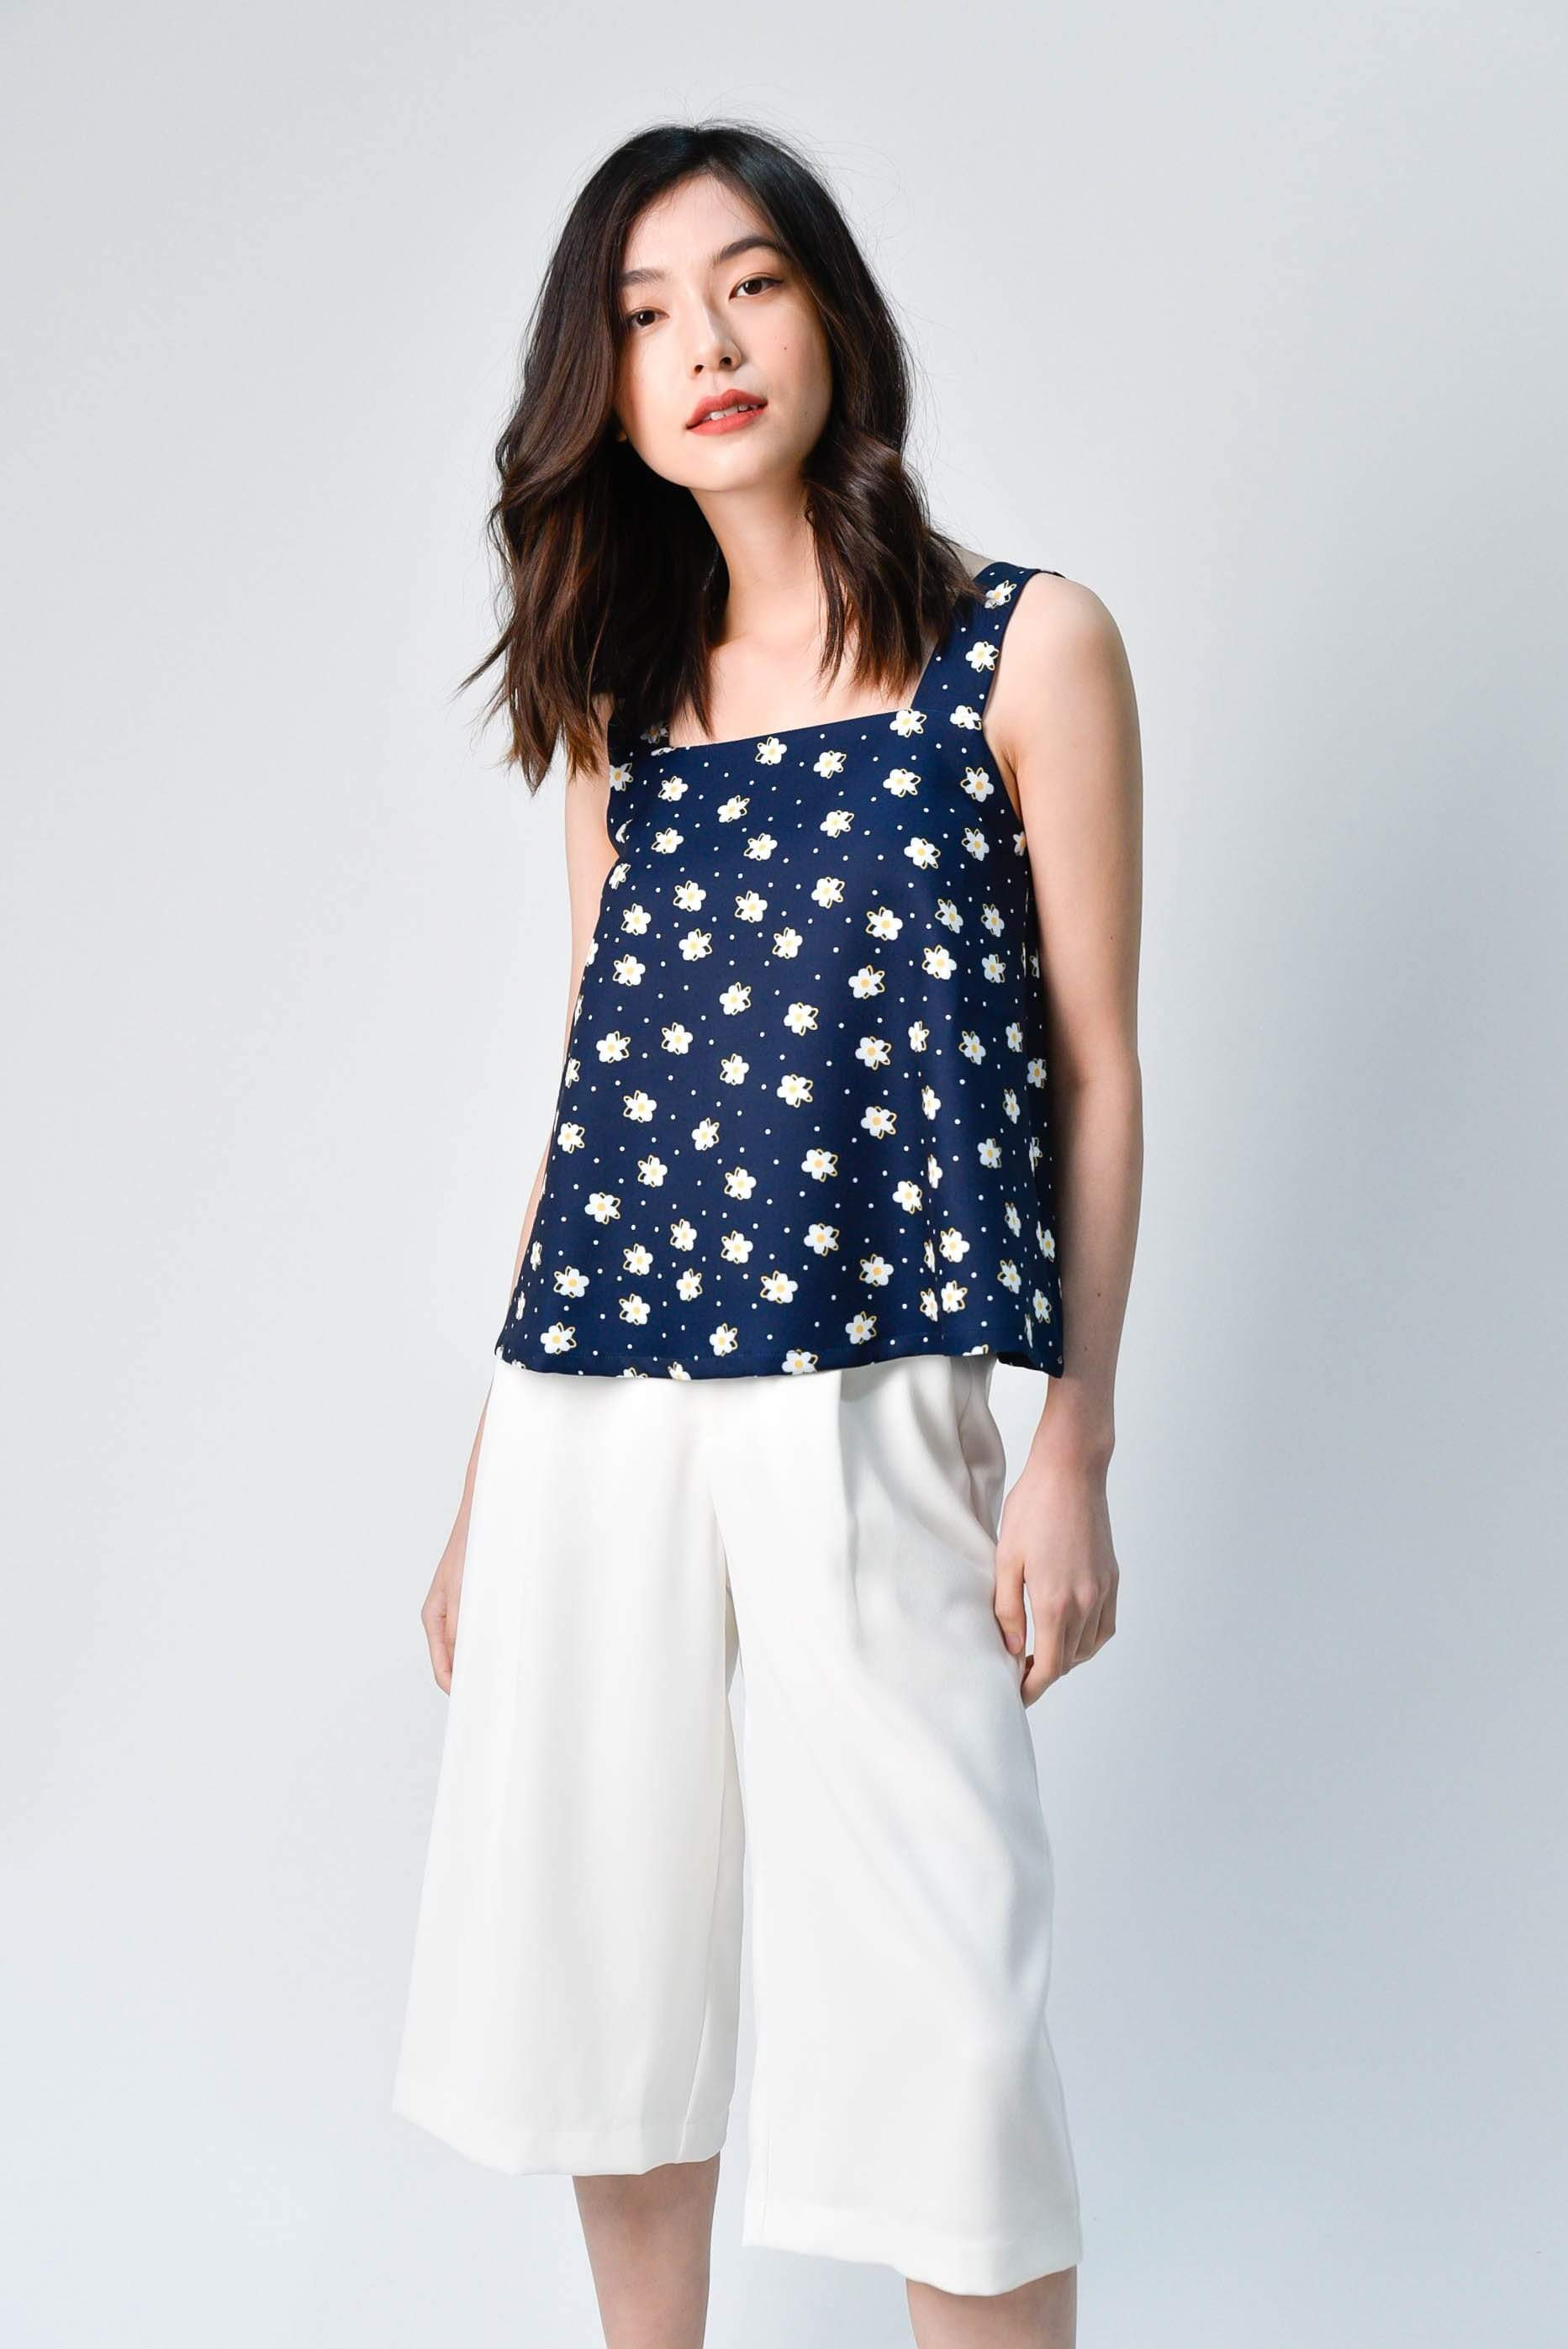 HANA NAVY FLORAL KNOTTED TOP